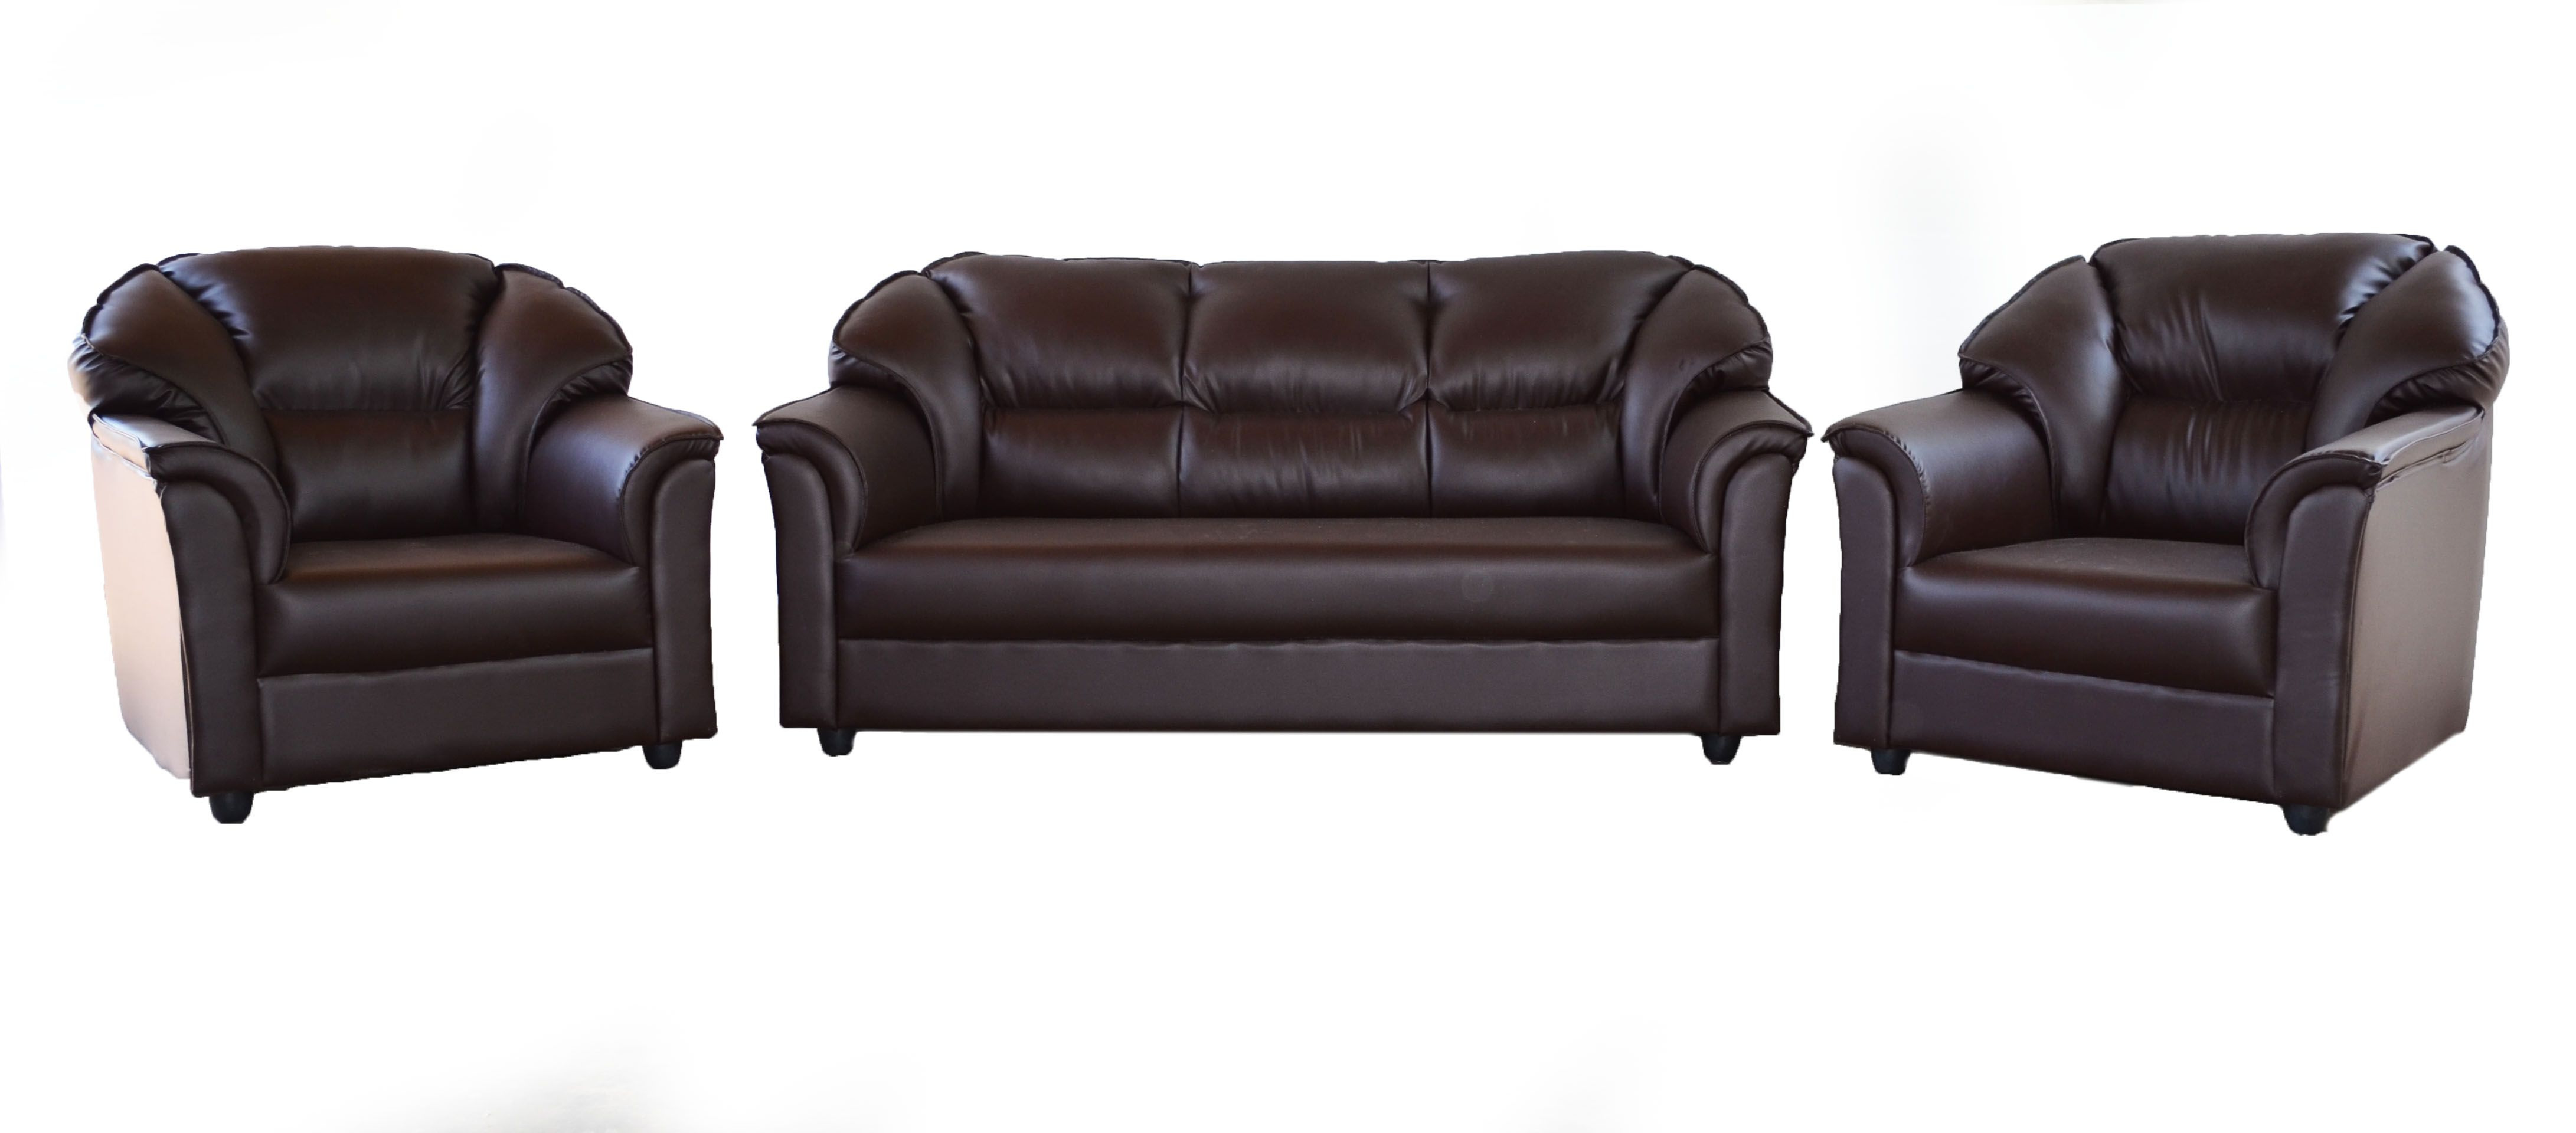 westido manhattan brown 3 1 seater sofa set MZTOEHT